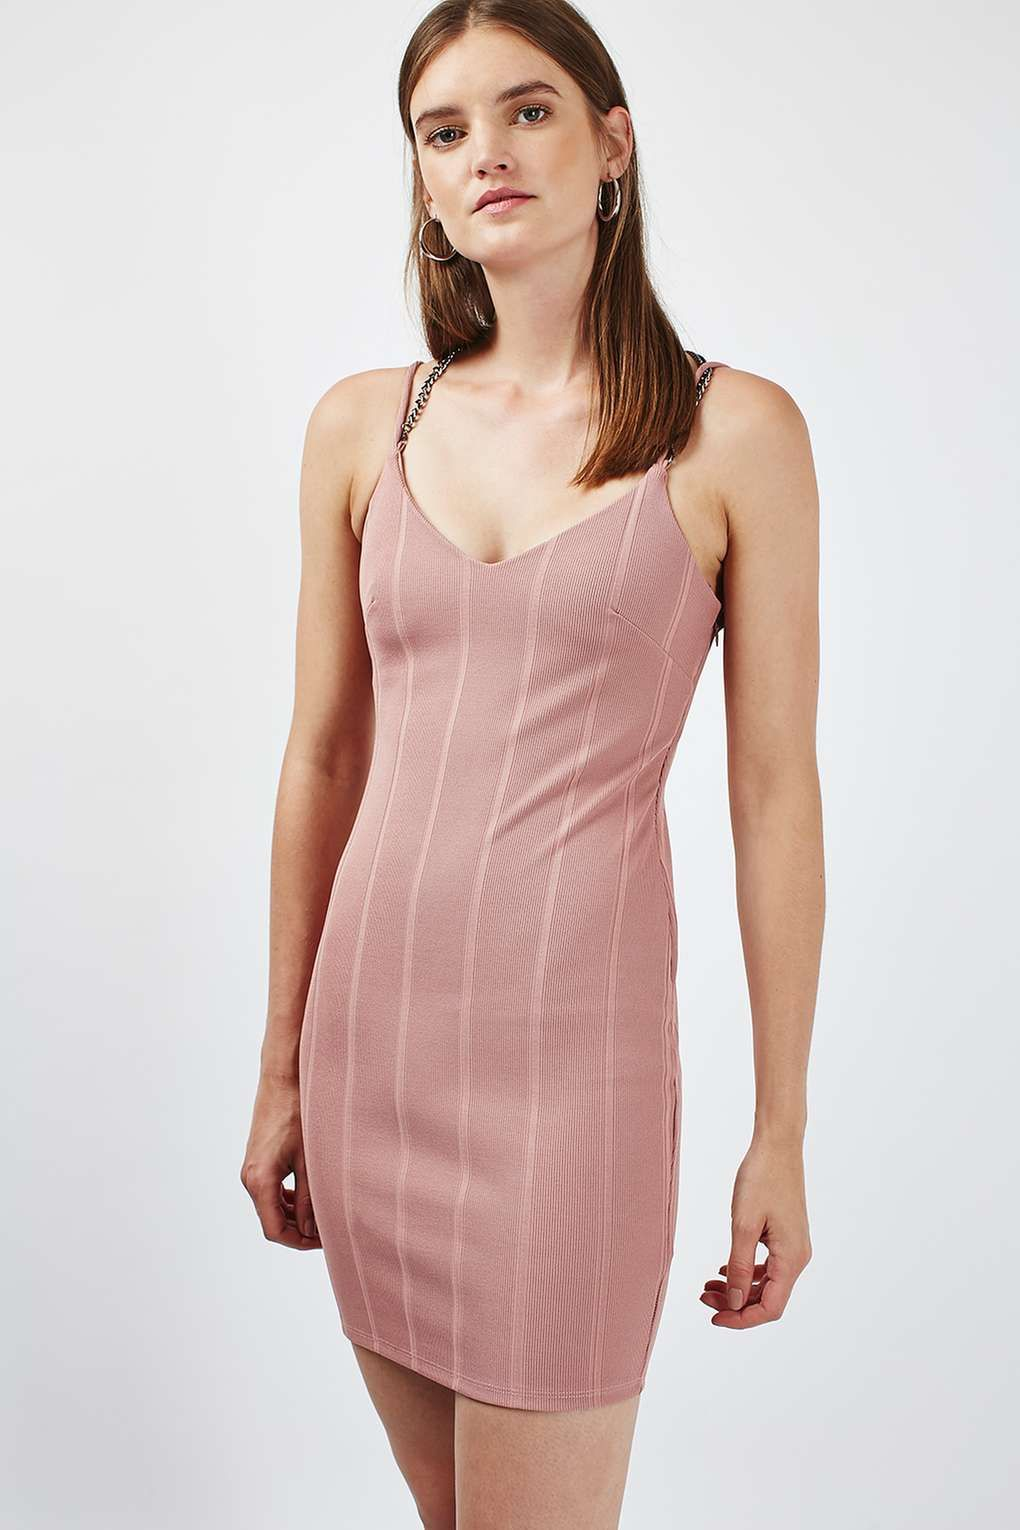 PETITE Chain Bandage Dress - Dresses - Clothing - Topshop | Grl ...